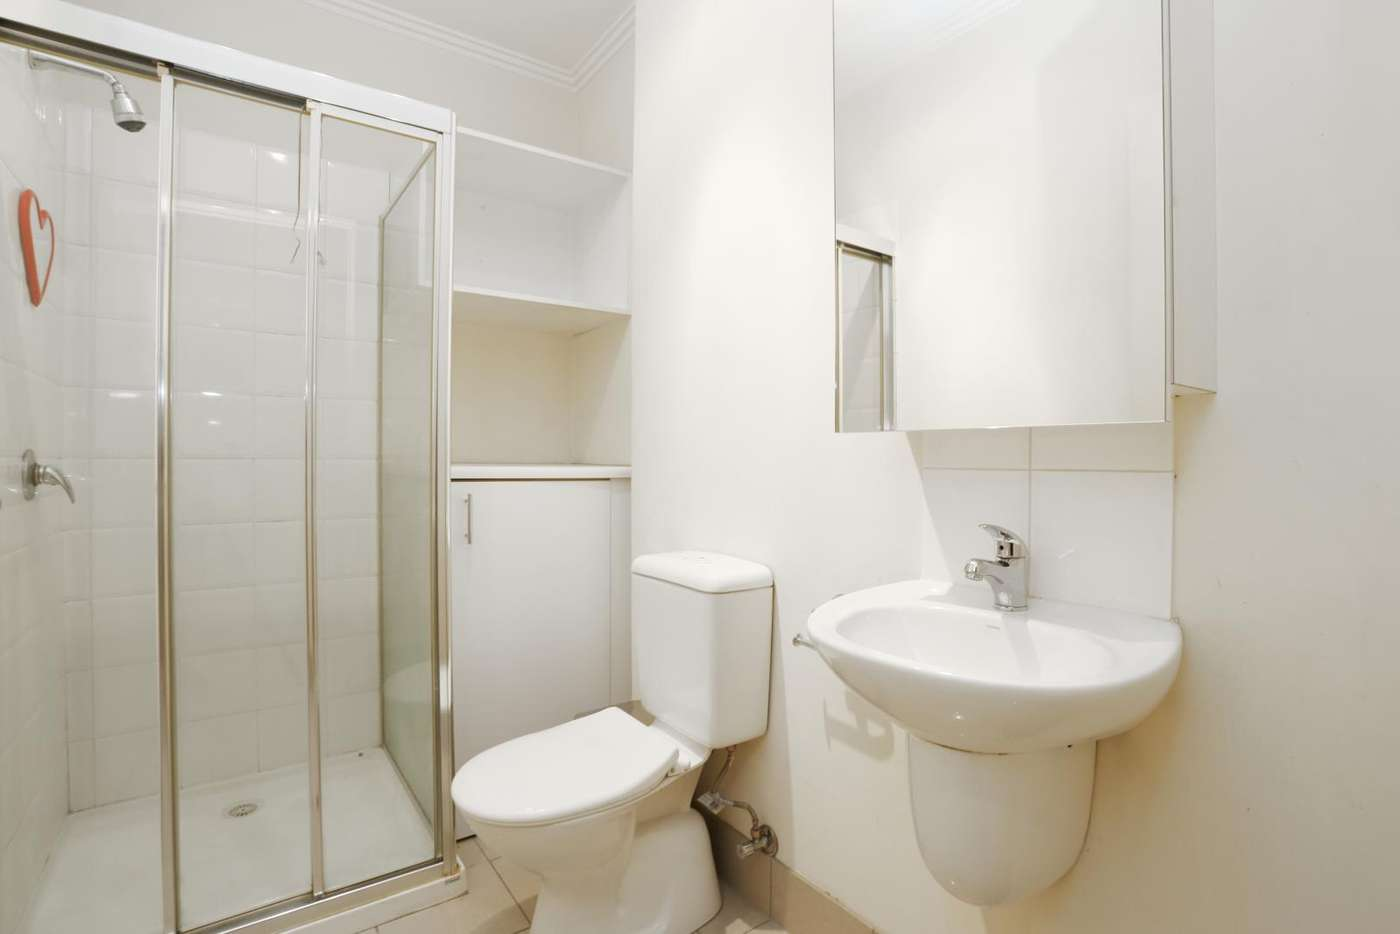 Fifth view of Homely studio listing, 65 Elizabeth St, Melbourne VIC 3000